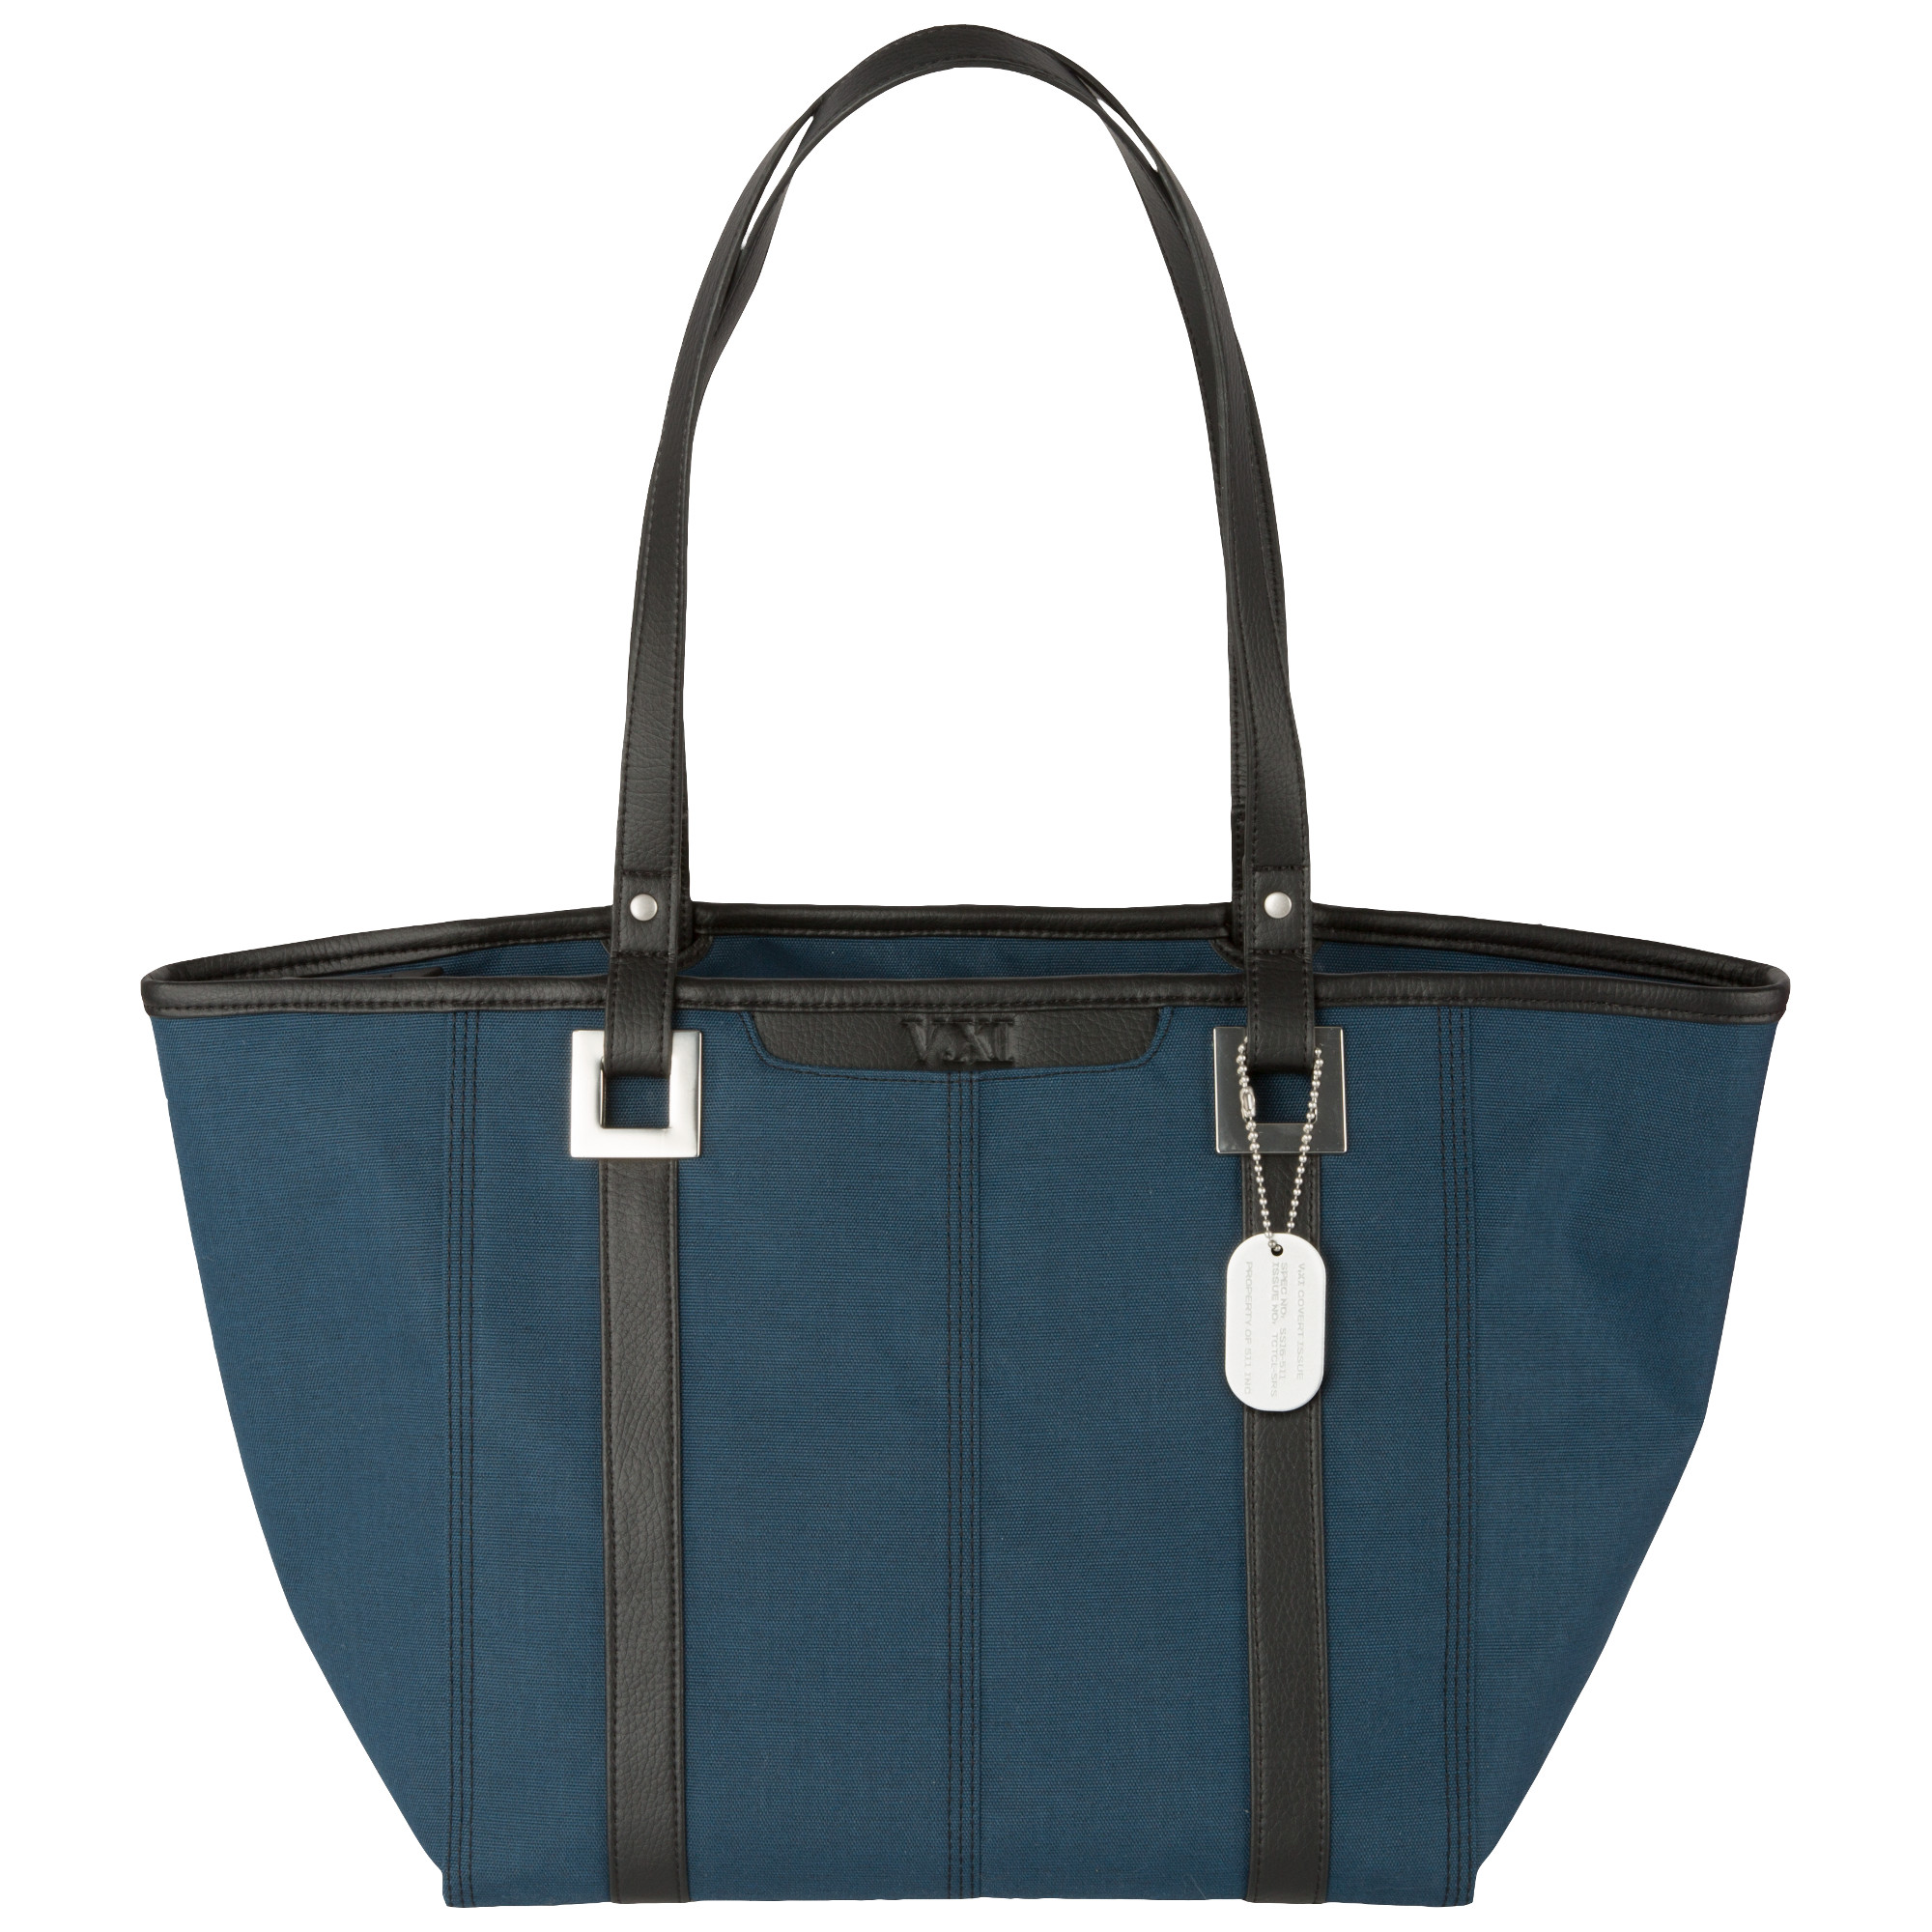 5.11 Tactical Women's Lucy Tote Deluxe (Blue)